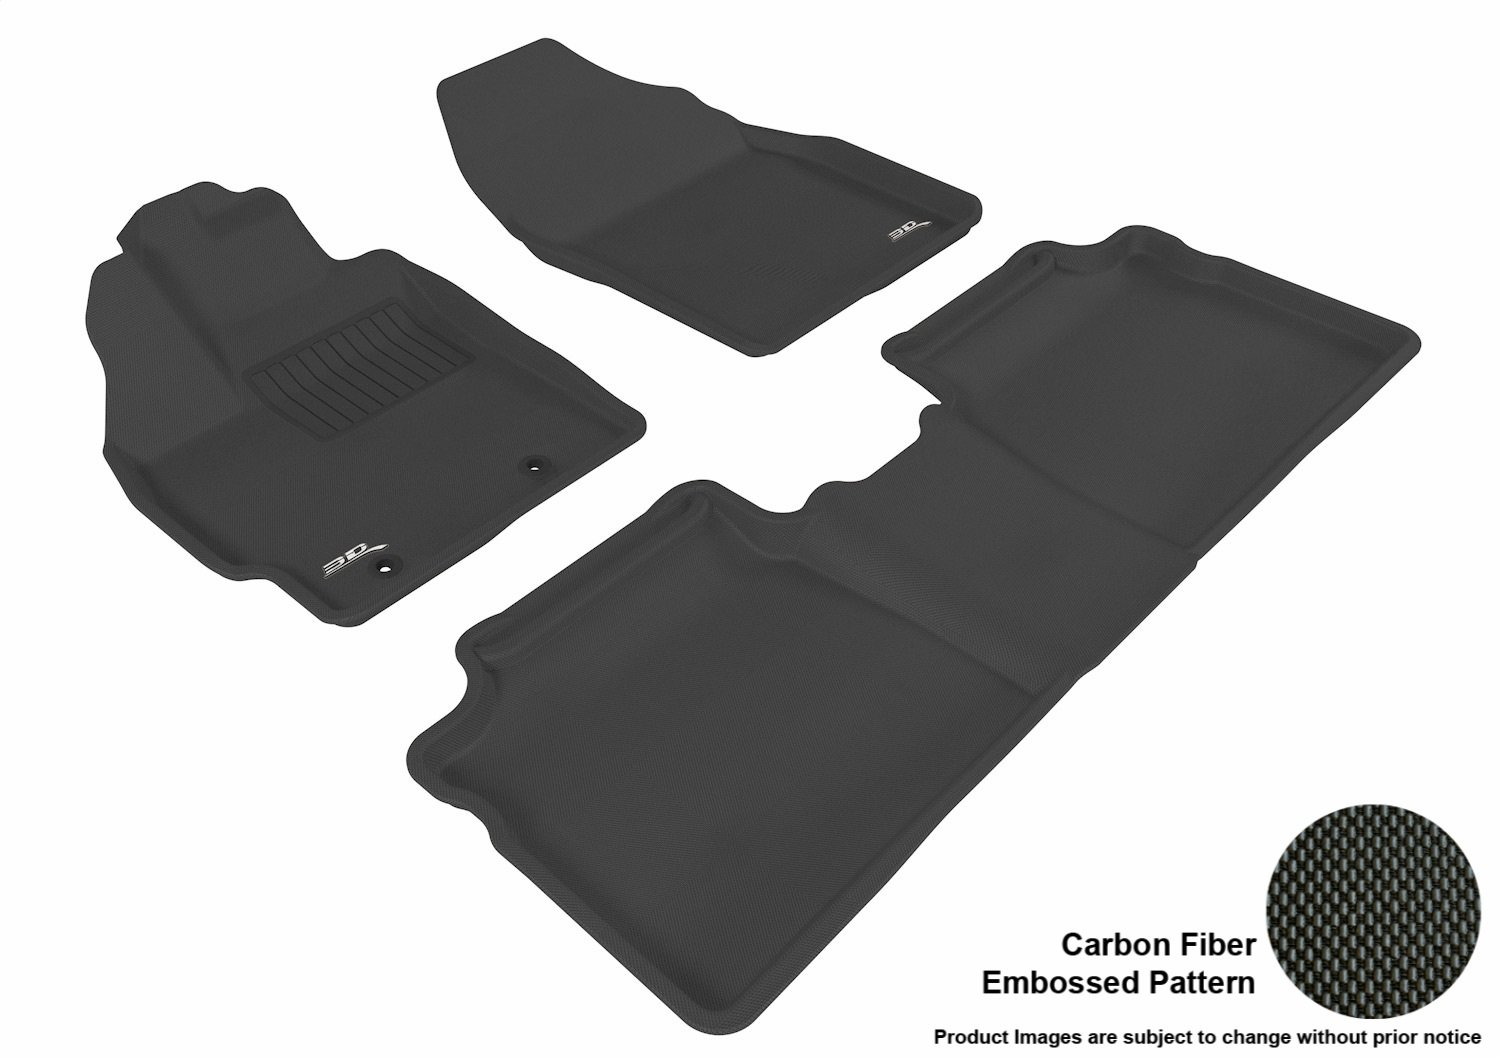 Kagu Rubber Black 3D MAXpider Complete Set Custom Fit All-Weather Floor Mat for Select Toyota Prius Models L1TY04001509